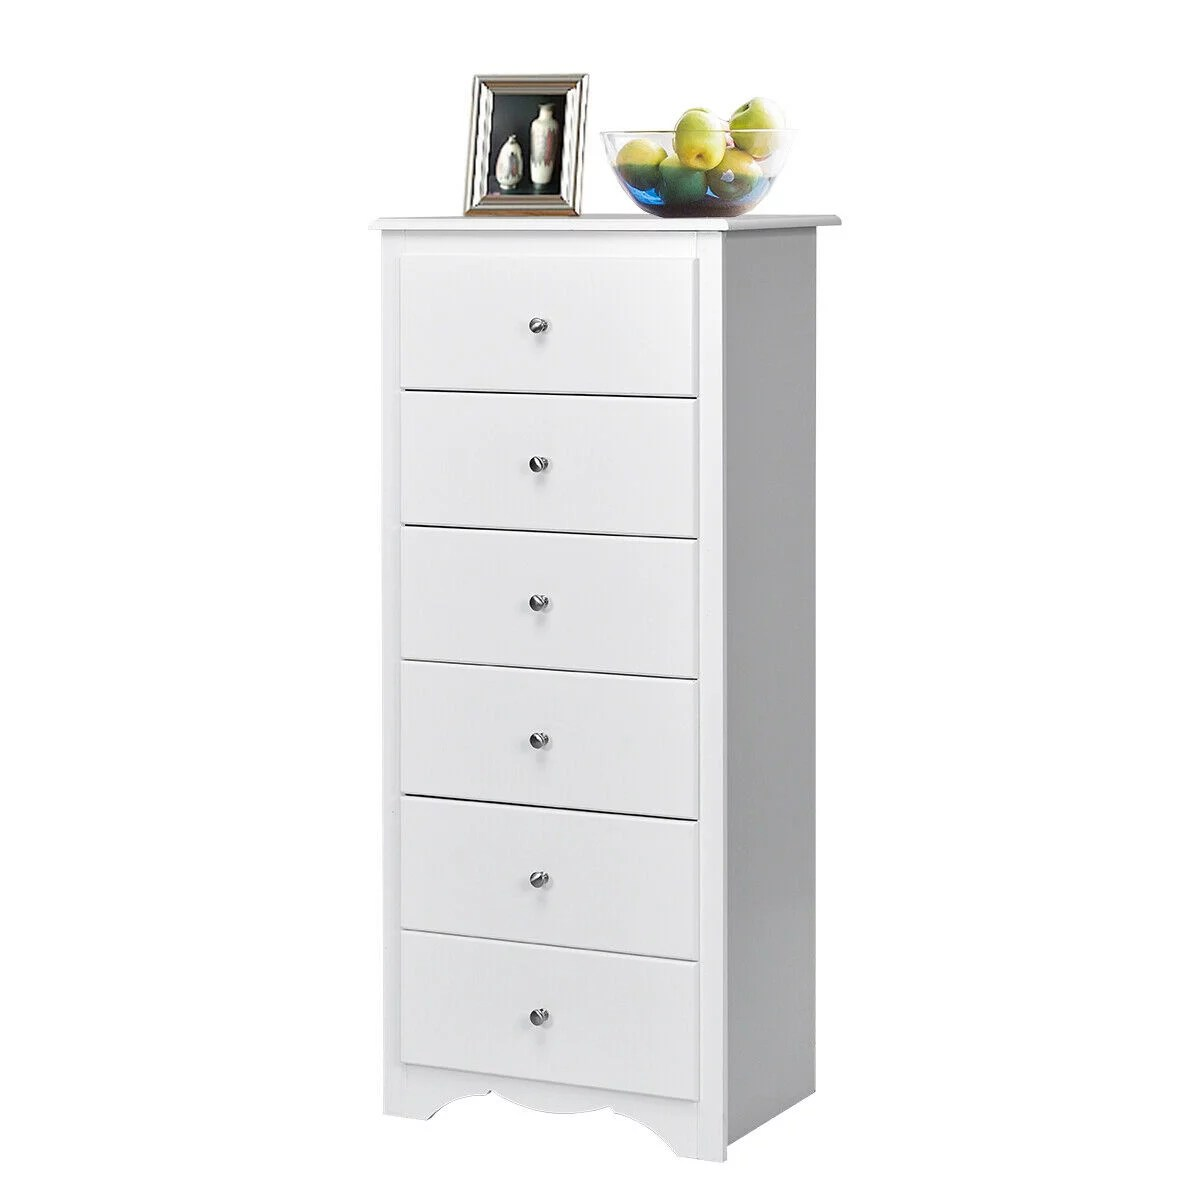 gymax 6 drawer chest dresser clothes storage bedroom tall furniture cabinet white